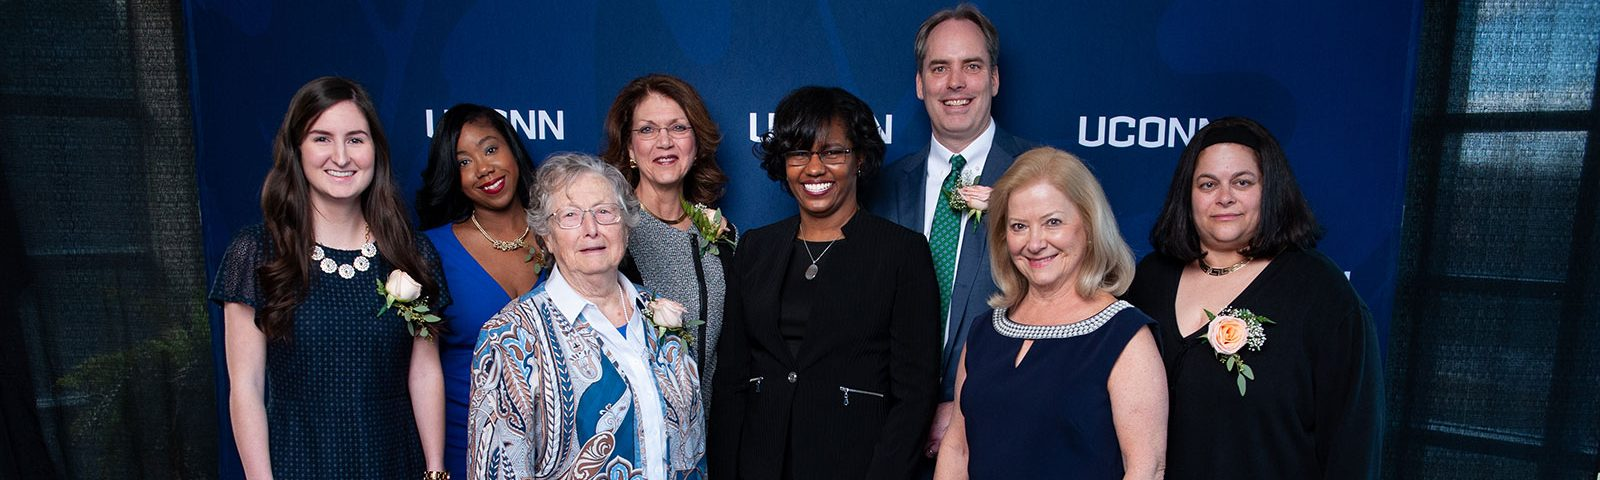 Neag School Marks 21st Annual Alumni Awards Celebration (Dean Kersaint with Seven Awardees for 2019)